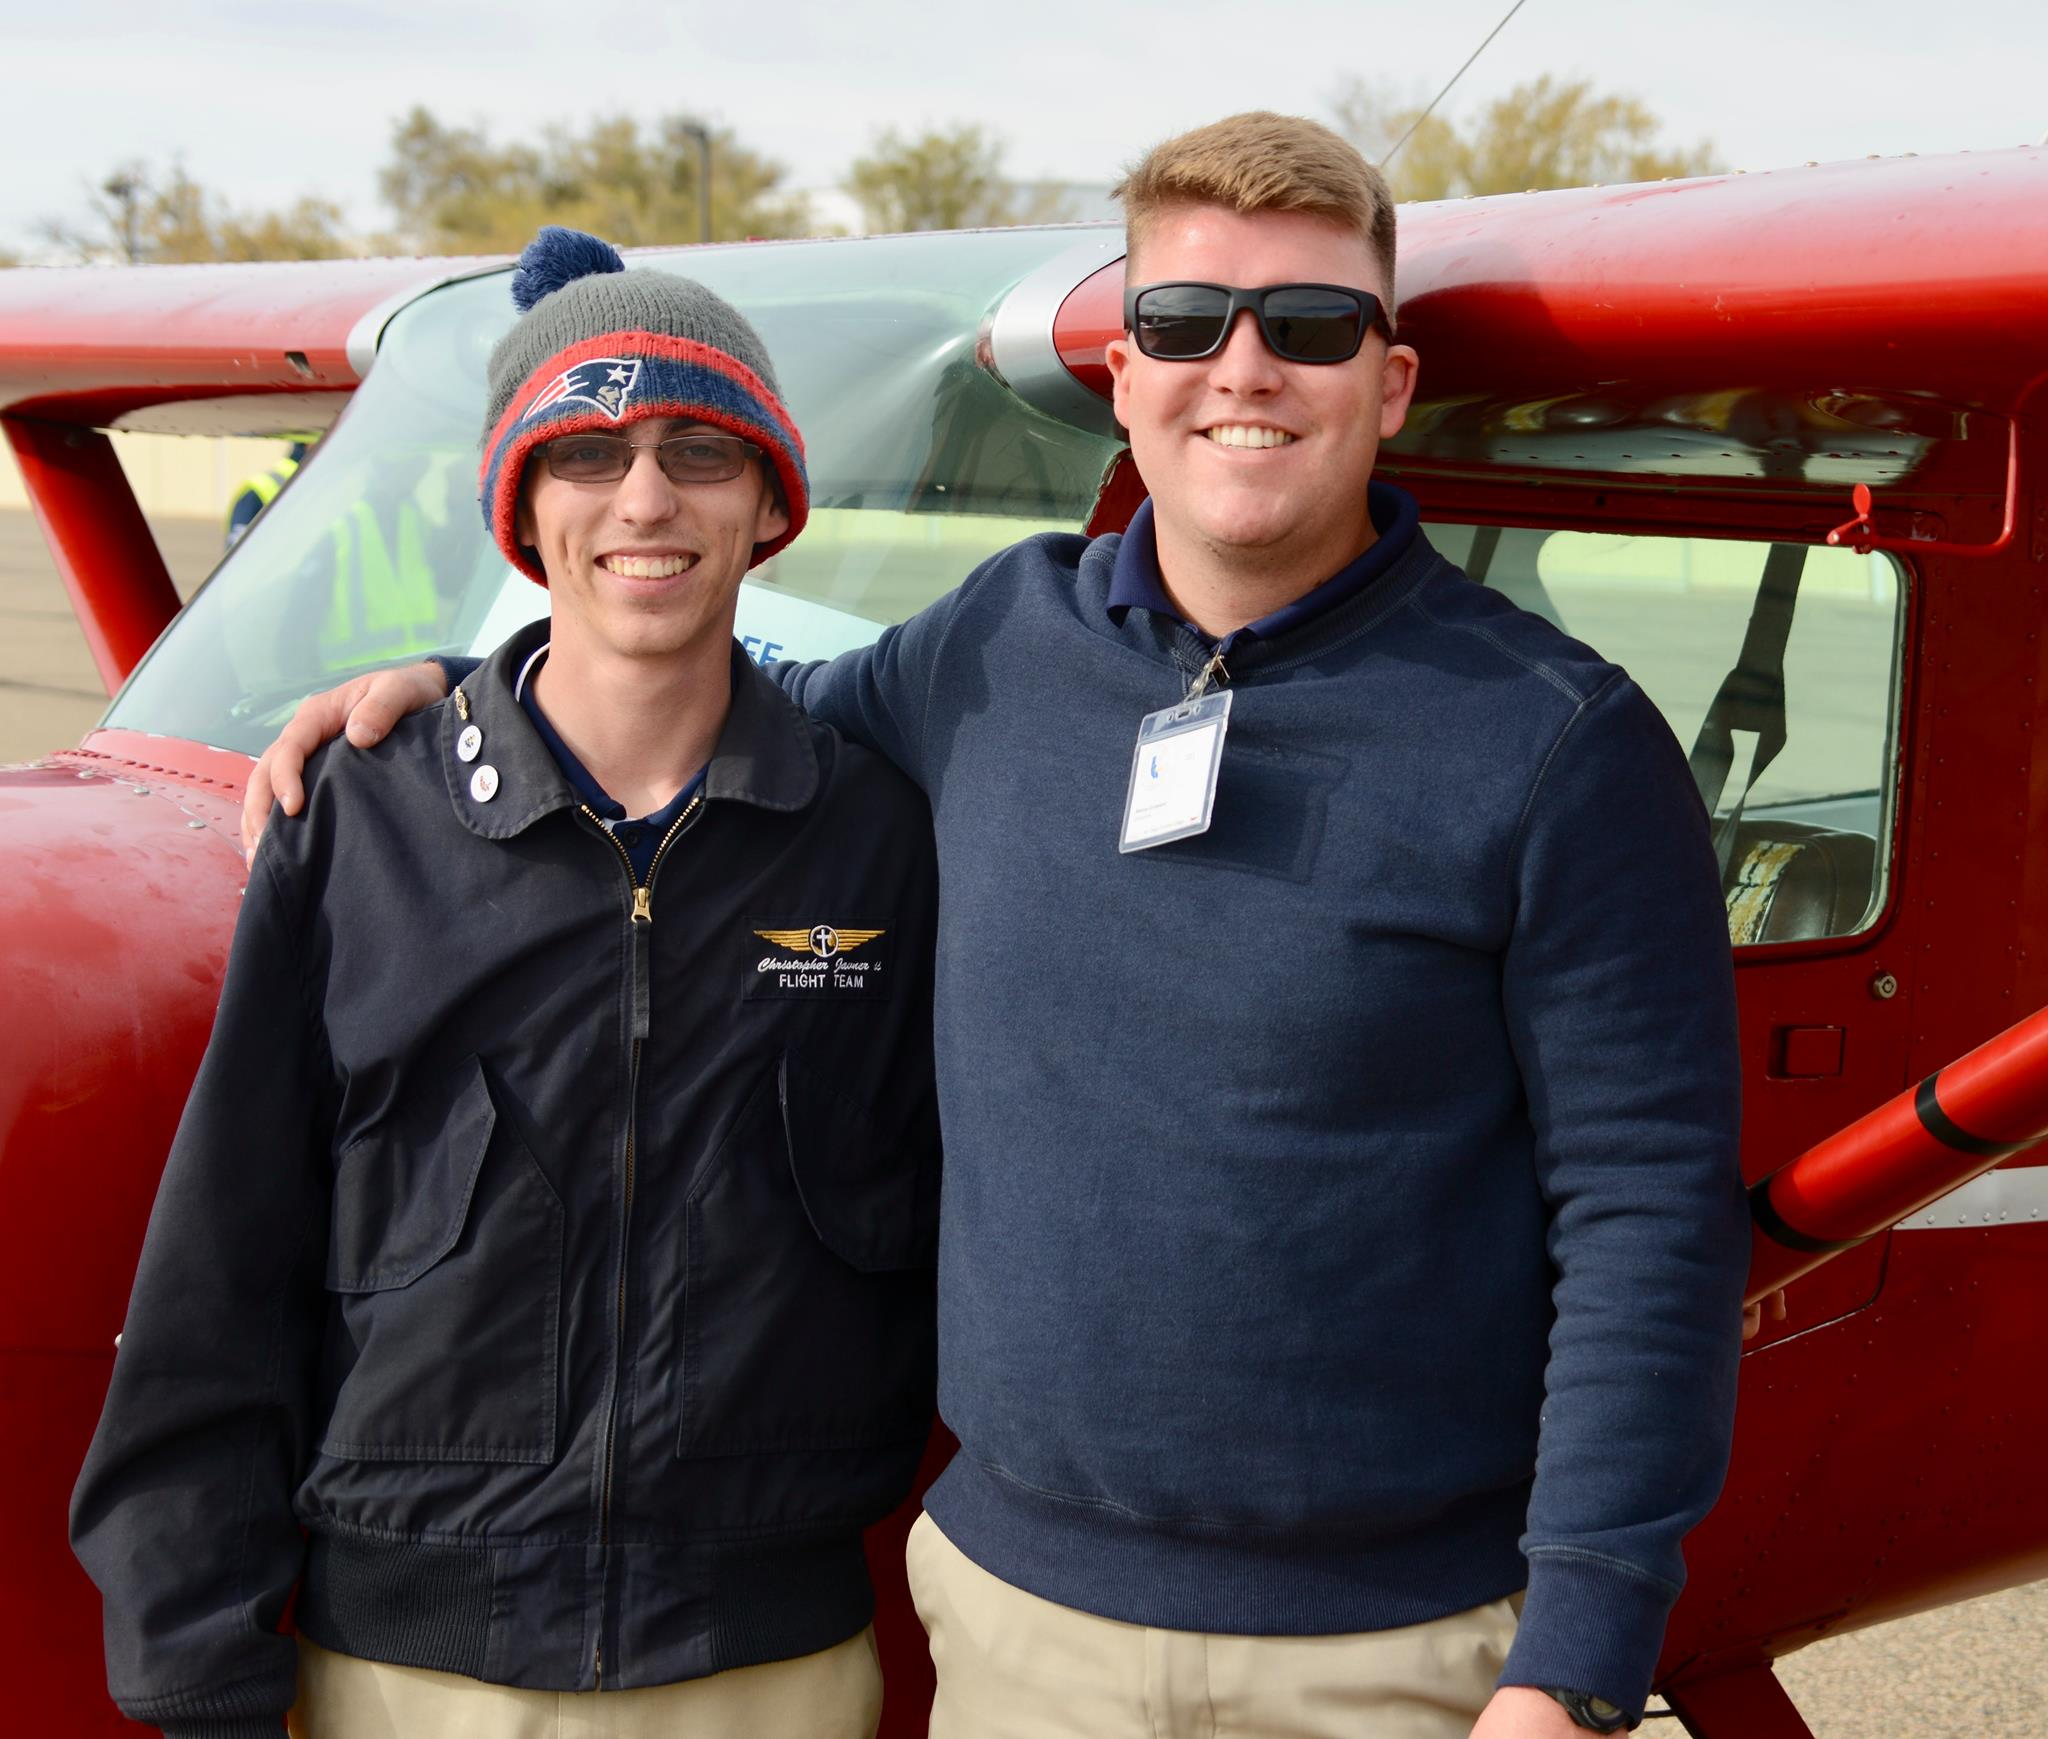 Chris Javner and Andy Griendland, SDC pilots